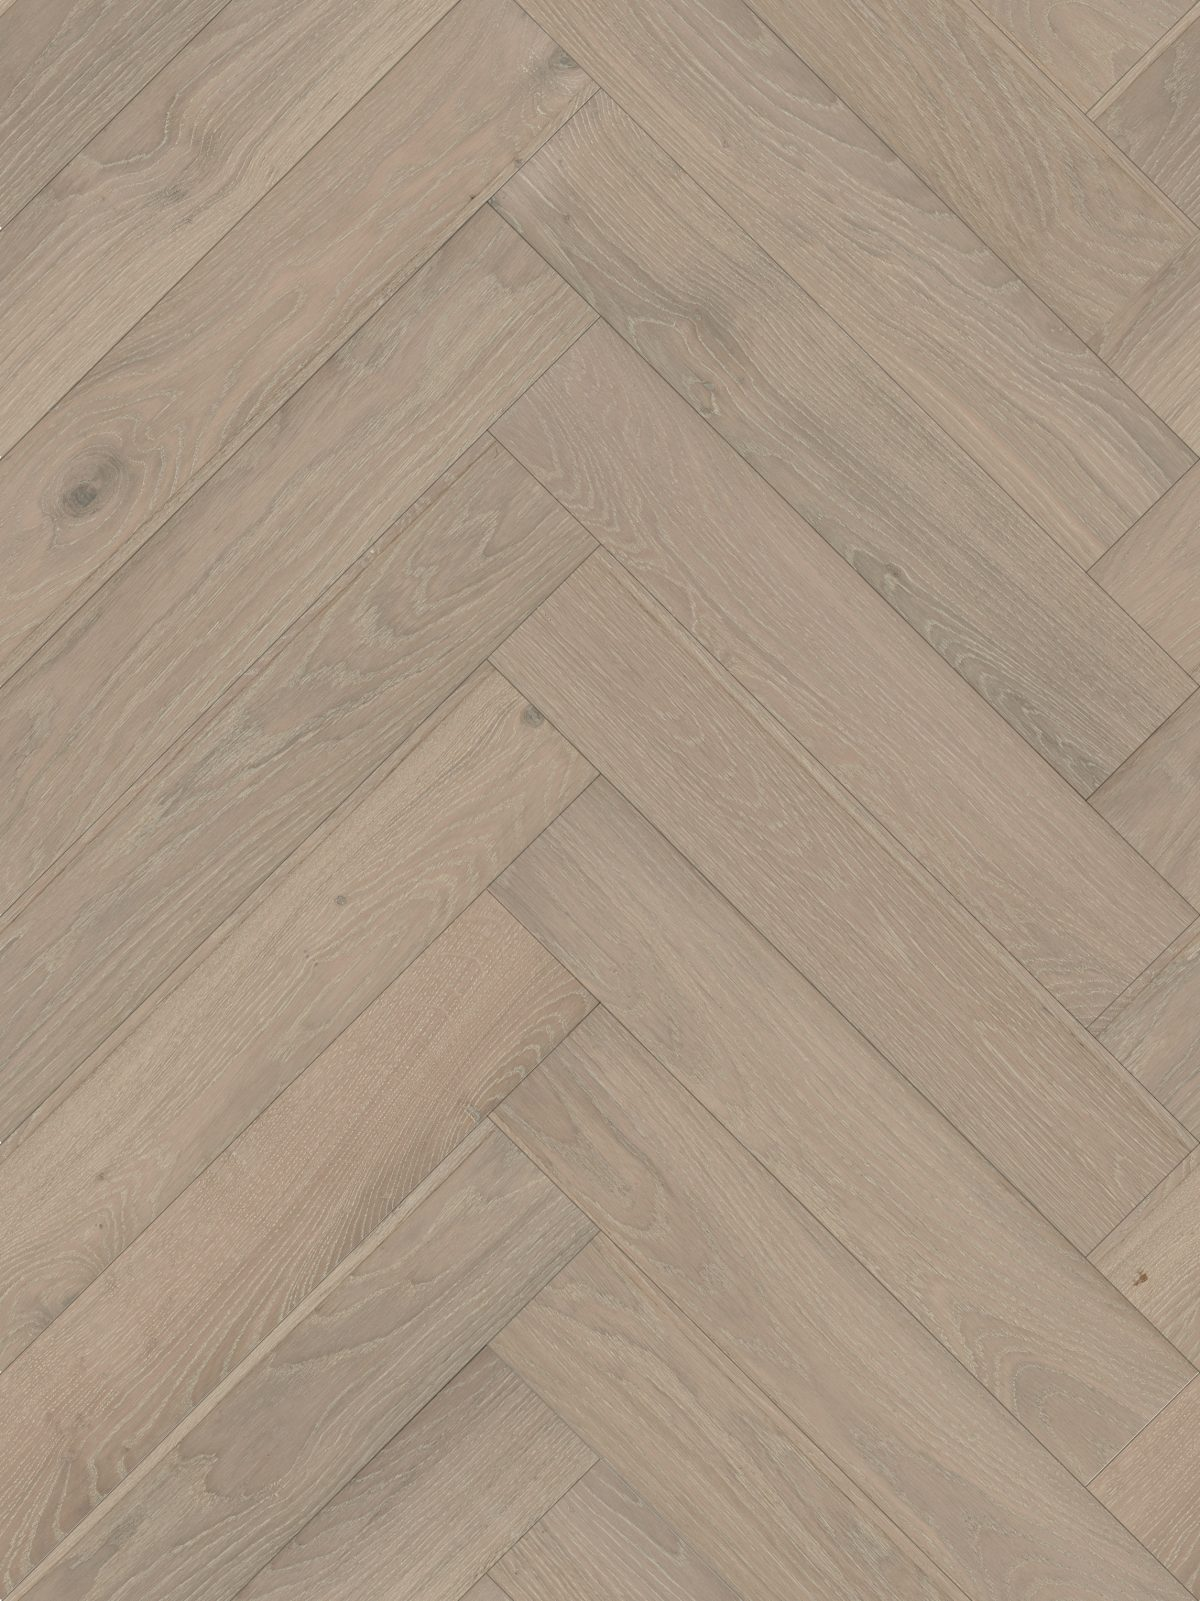 herringbone timber